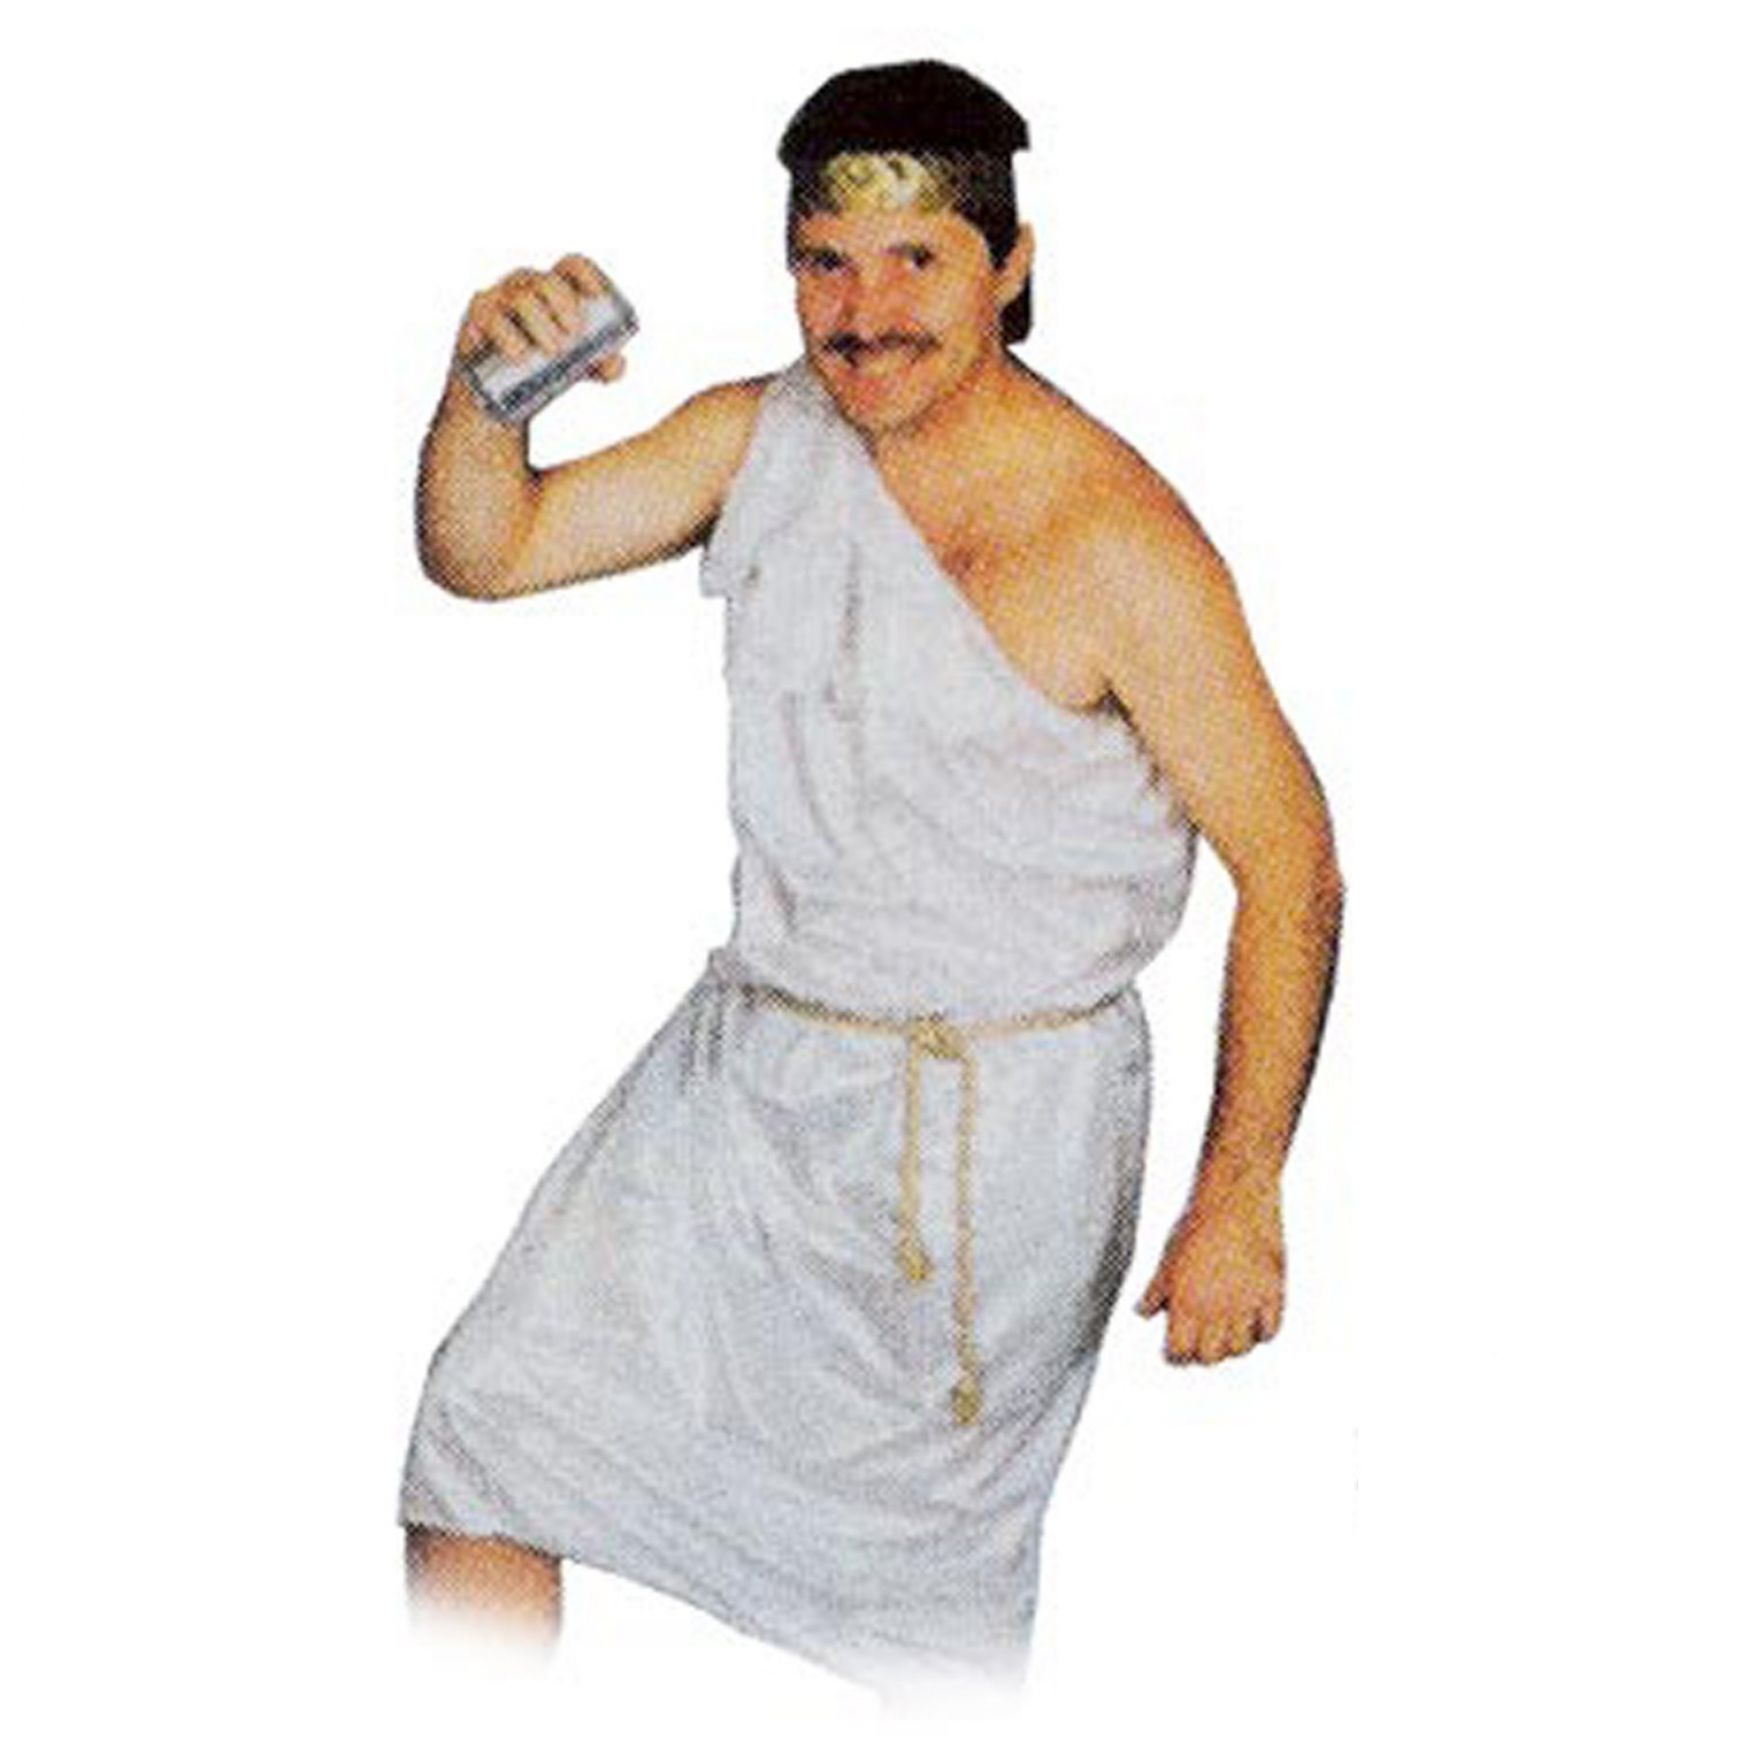 How To Make A Toga Out Of Sheet | Apps Directories